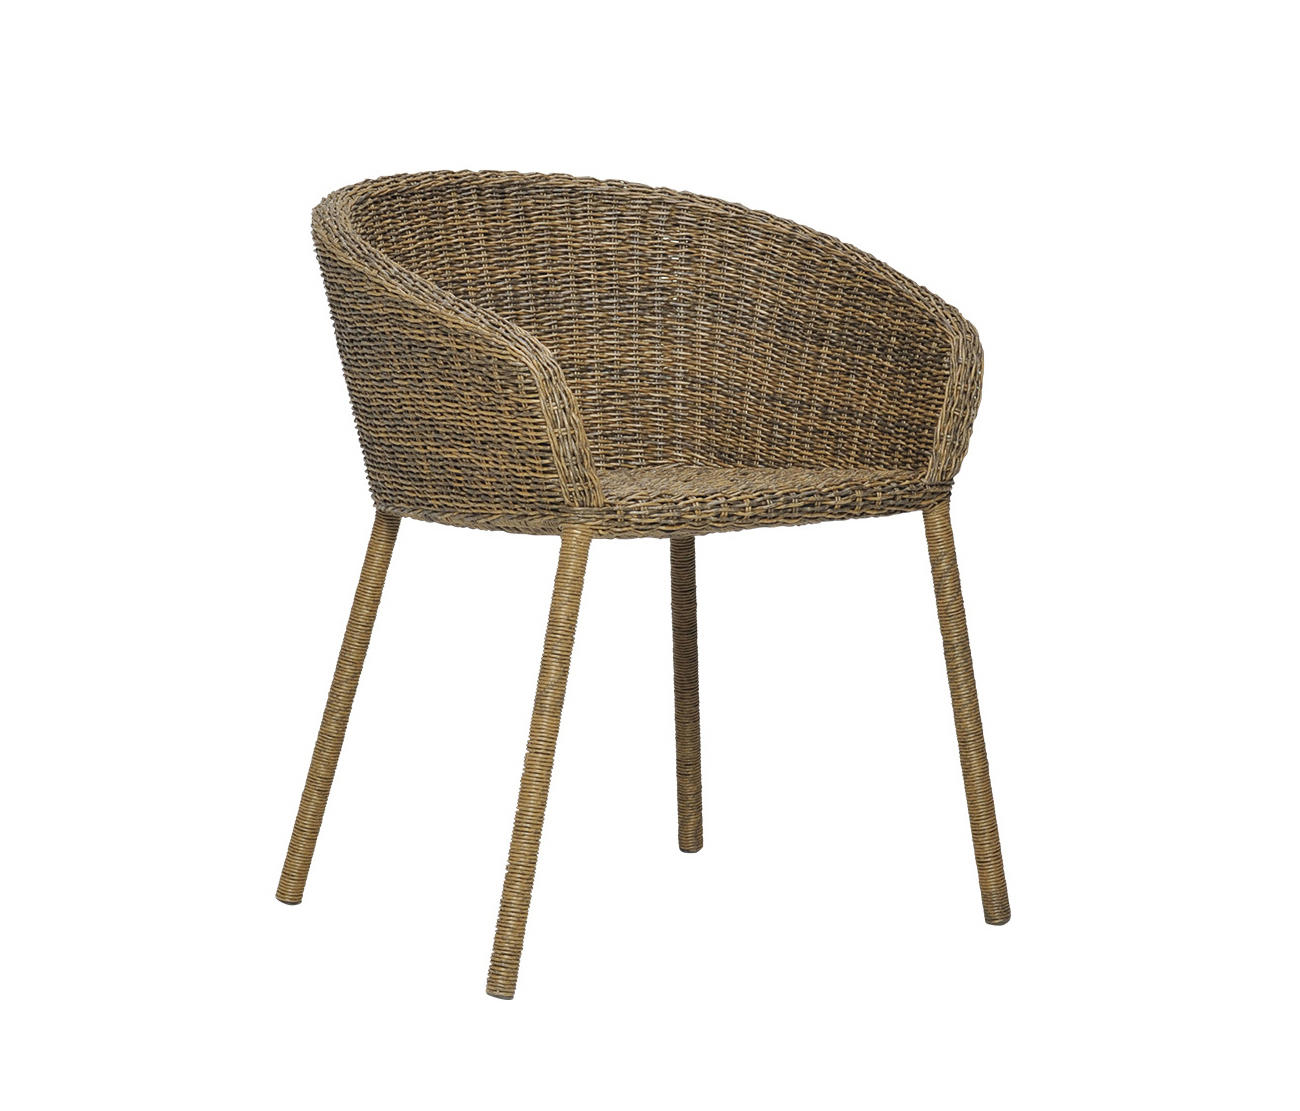 STRADA ARMCHAIR By JANUS Et Cie | Chairs ...